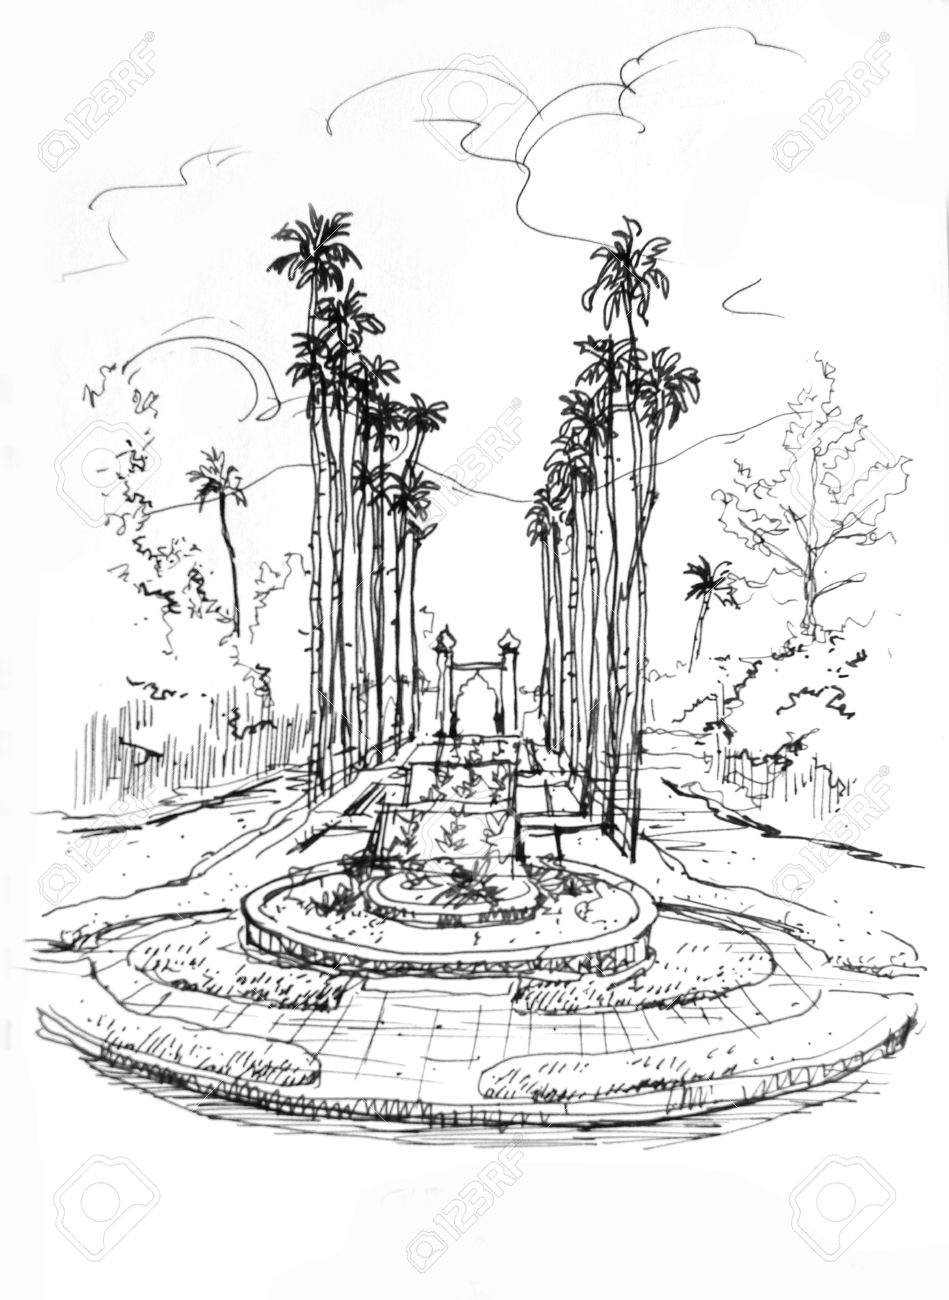 949x1300 Fountain Entrance With Palm Tree Pencil Drawing Stock Photo